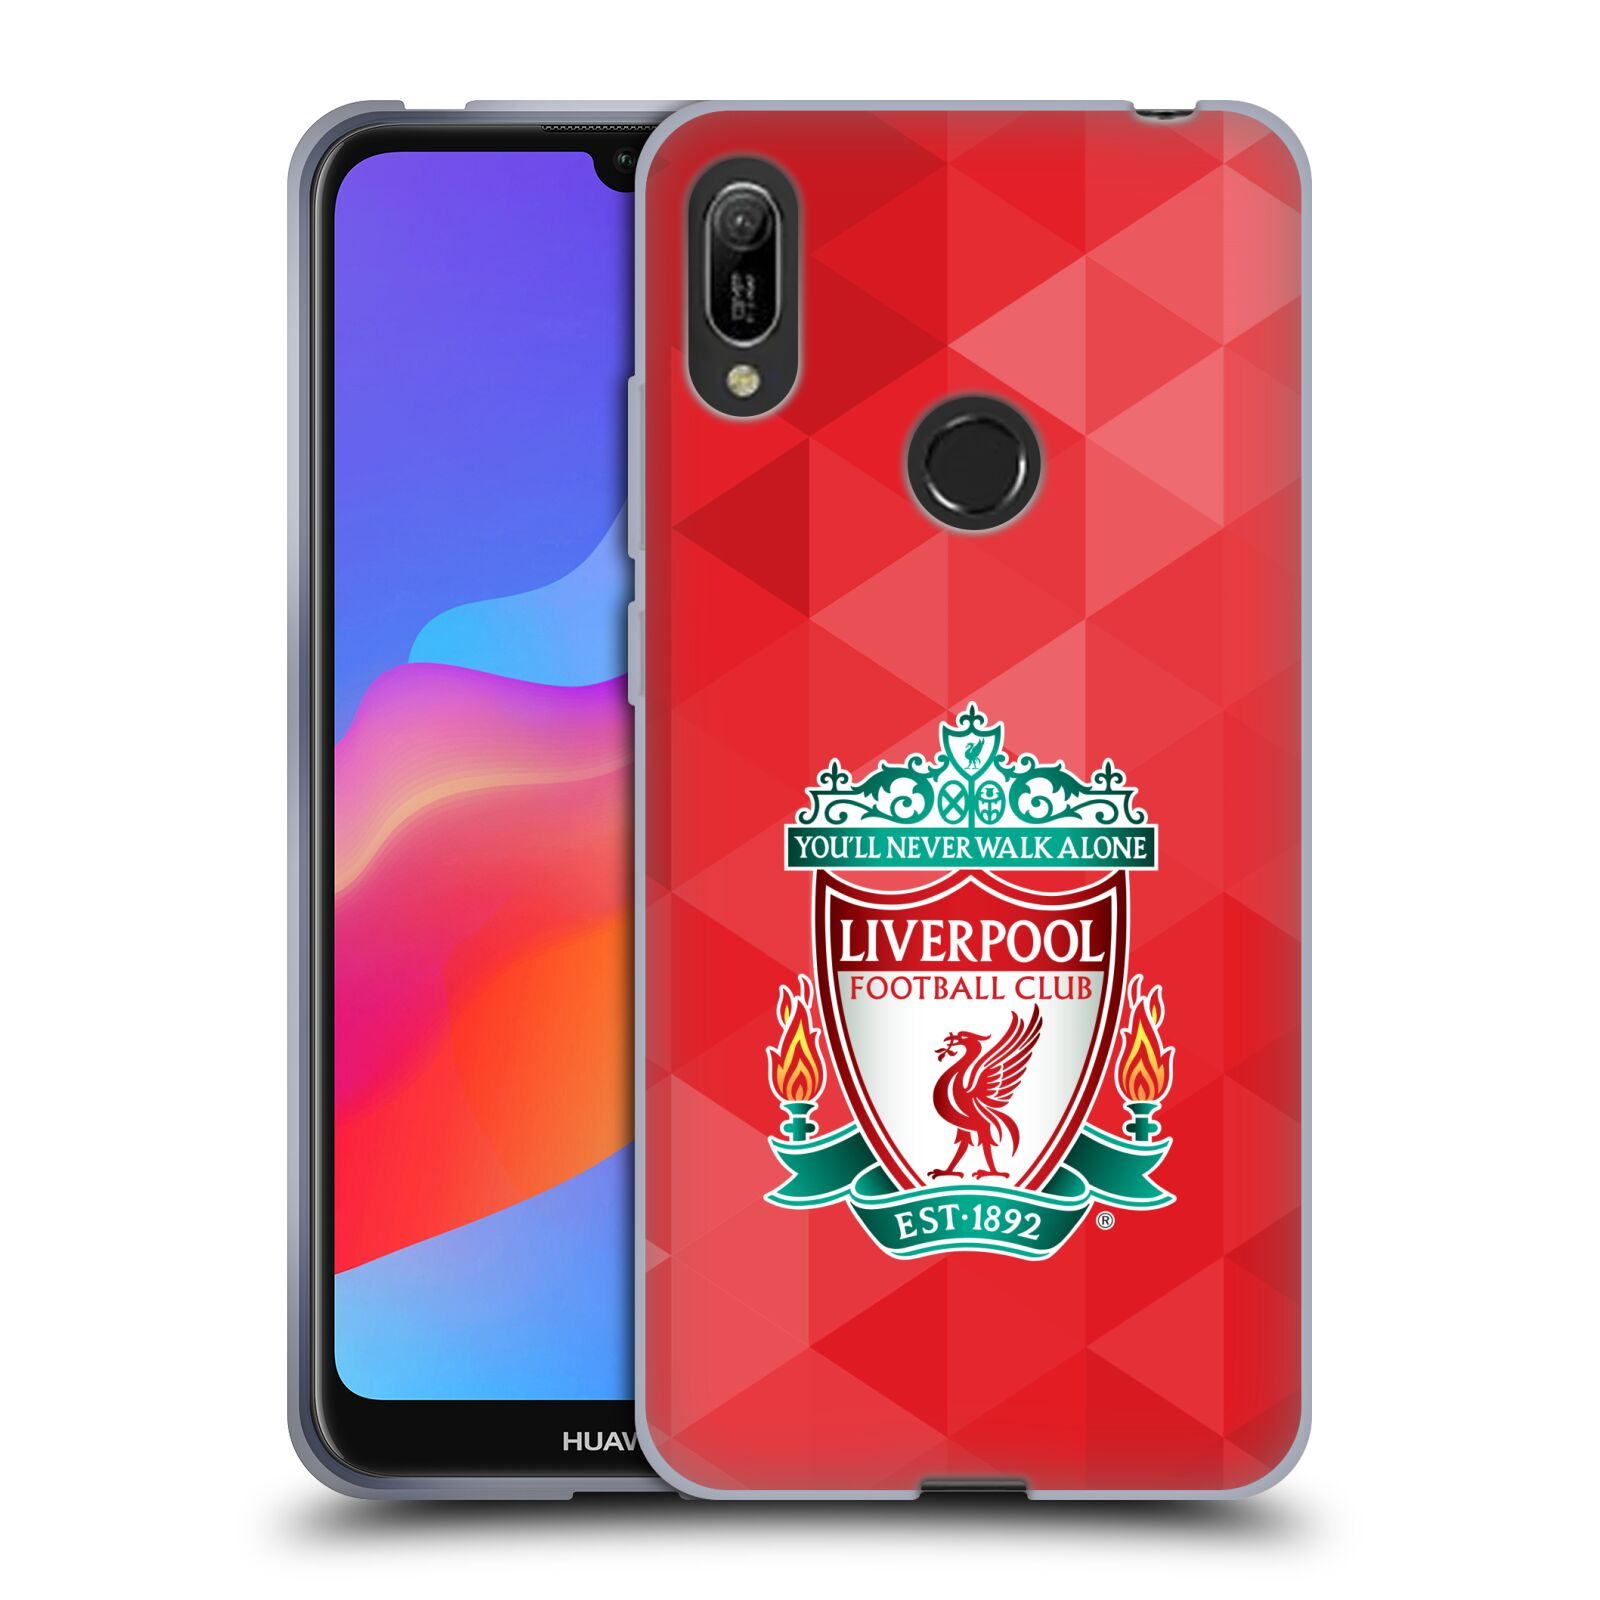 Silikonové pouzdro na mobil Huawei Y6 (2019) - Head Case - ZNAK LIVERPOOL FC OFFICIAL GEOMETRIC RED